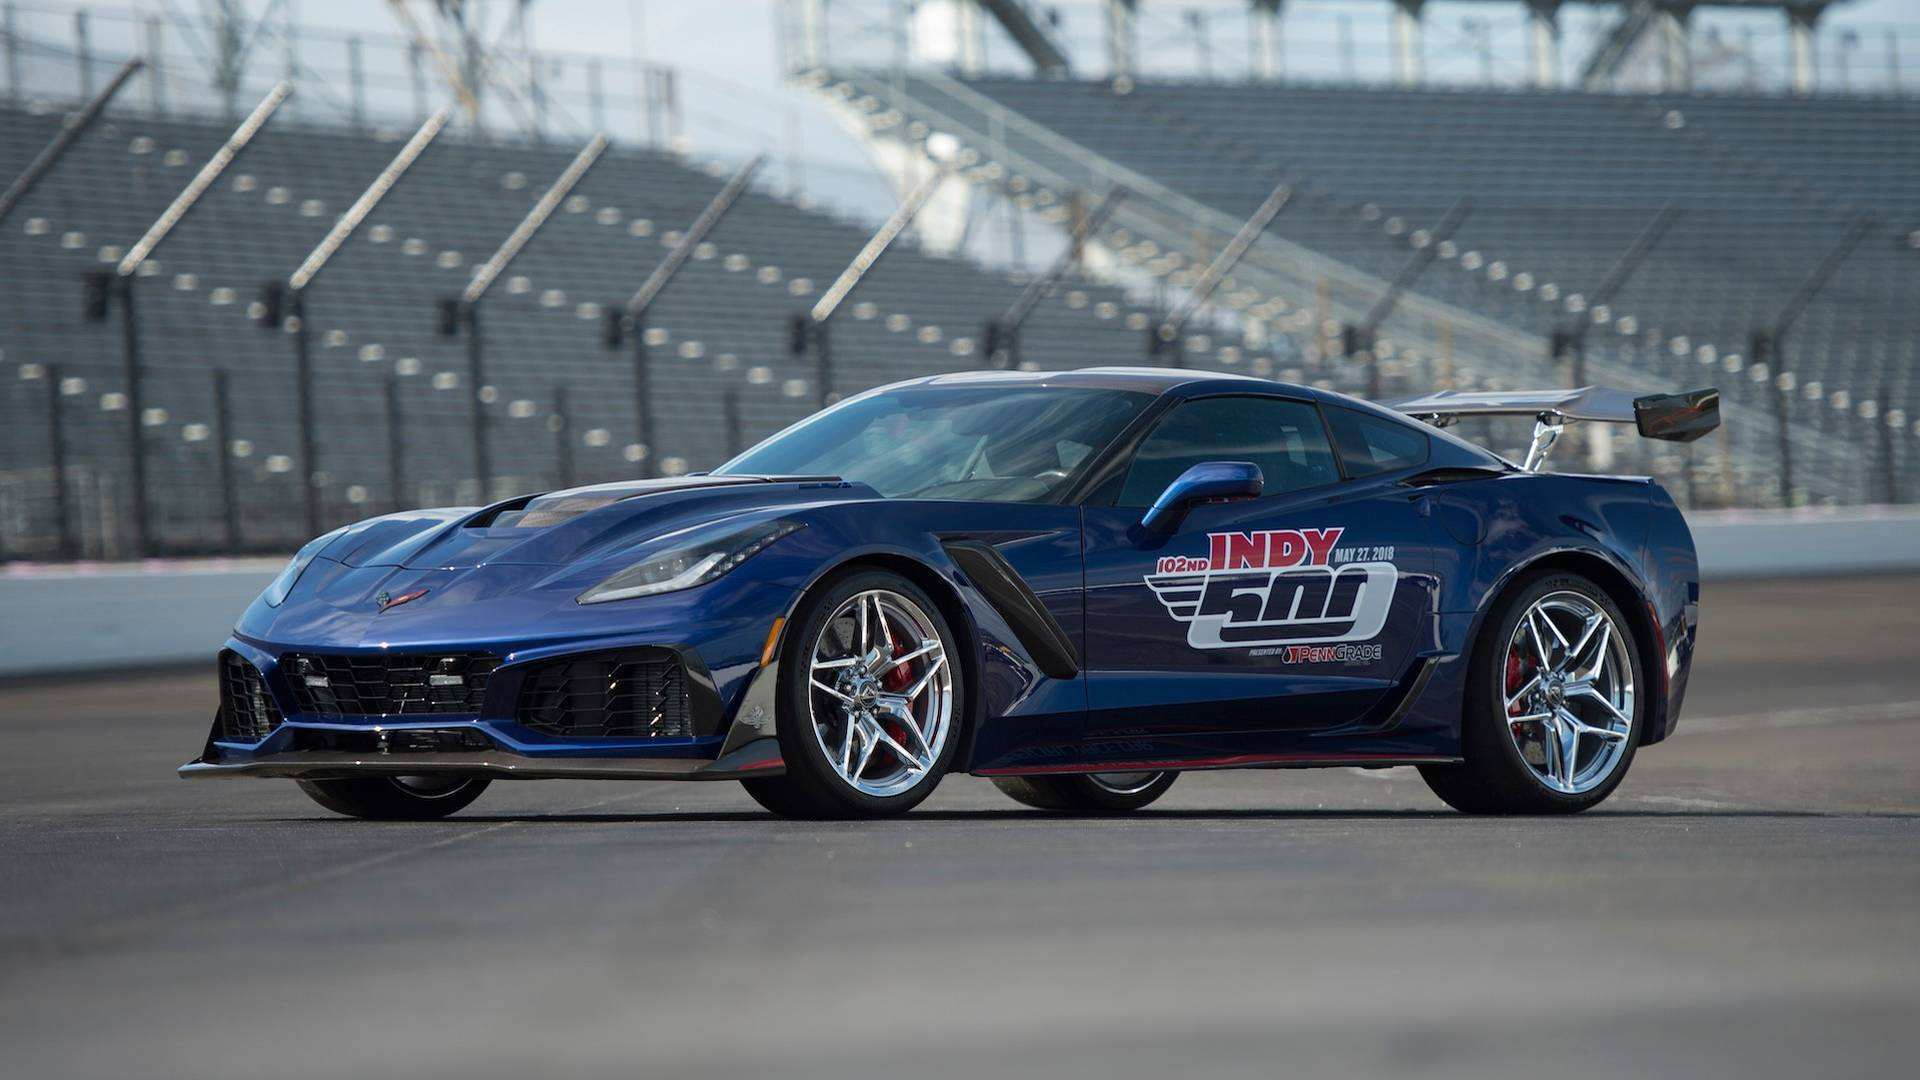 50 Best 2019 Chevrolet Corvette Zr1 Is Gms Most Powerful Car Ever Pictures